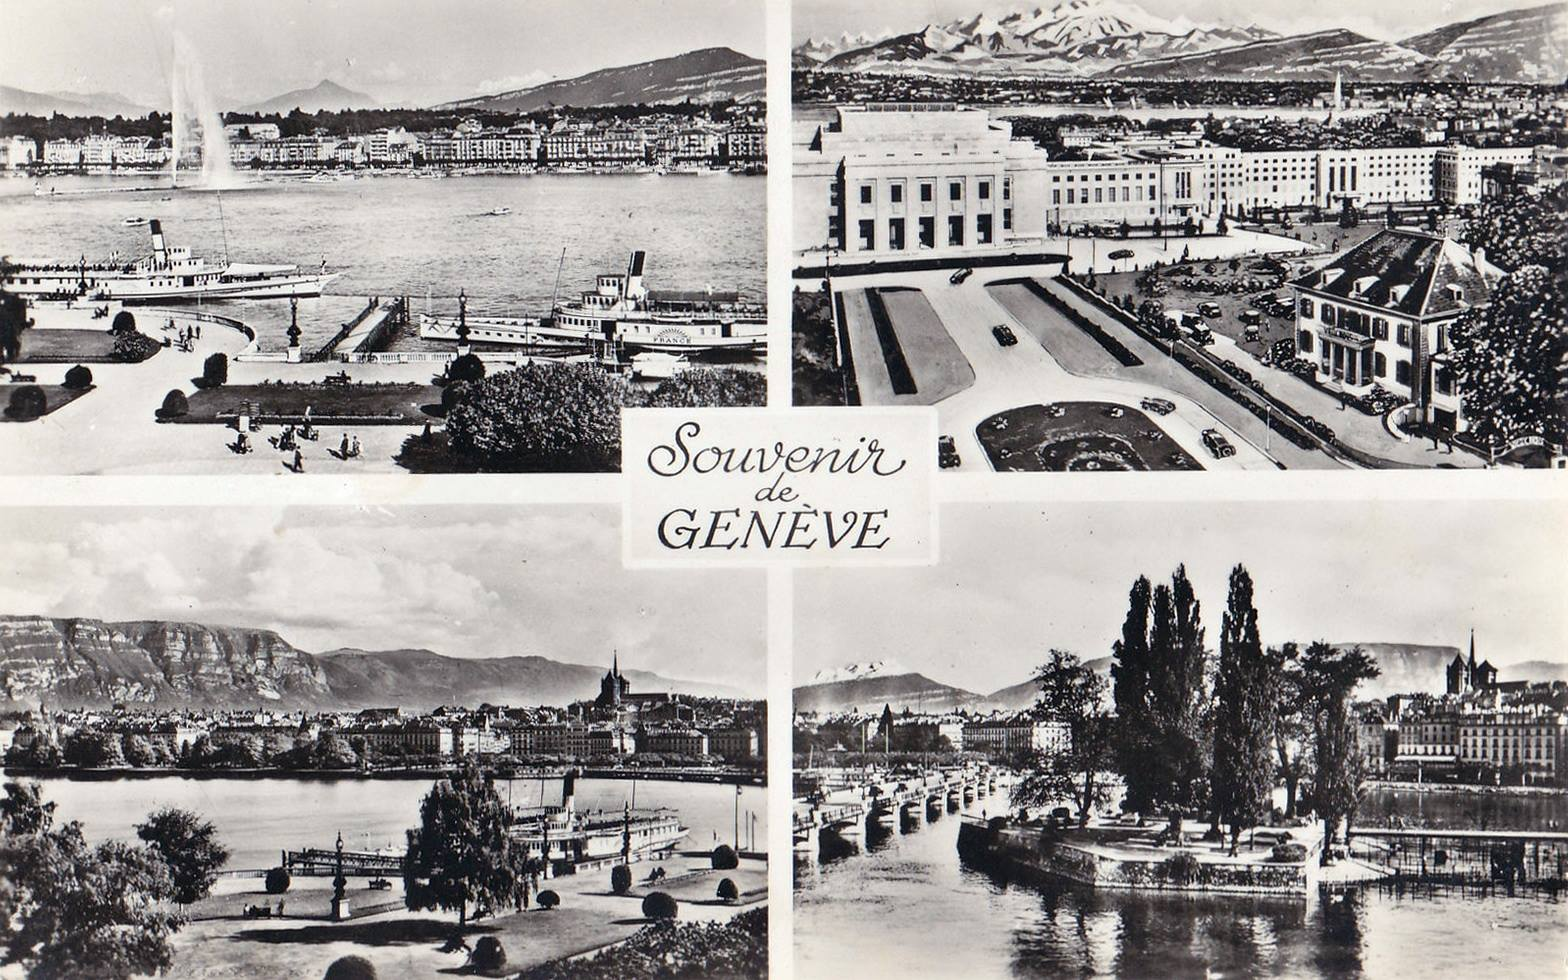 Vintage postcard of Geneva with 4 black-and-white drawings of Geneva landmarks including the Salève.